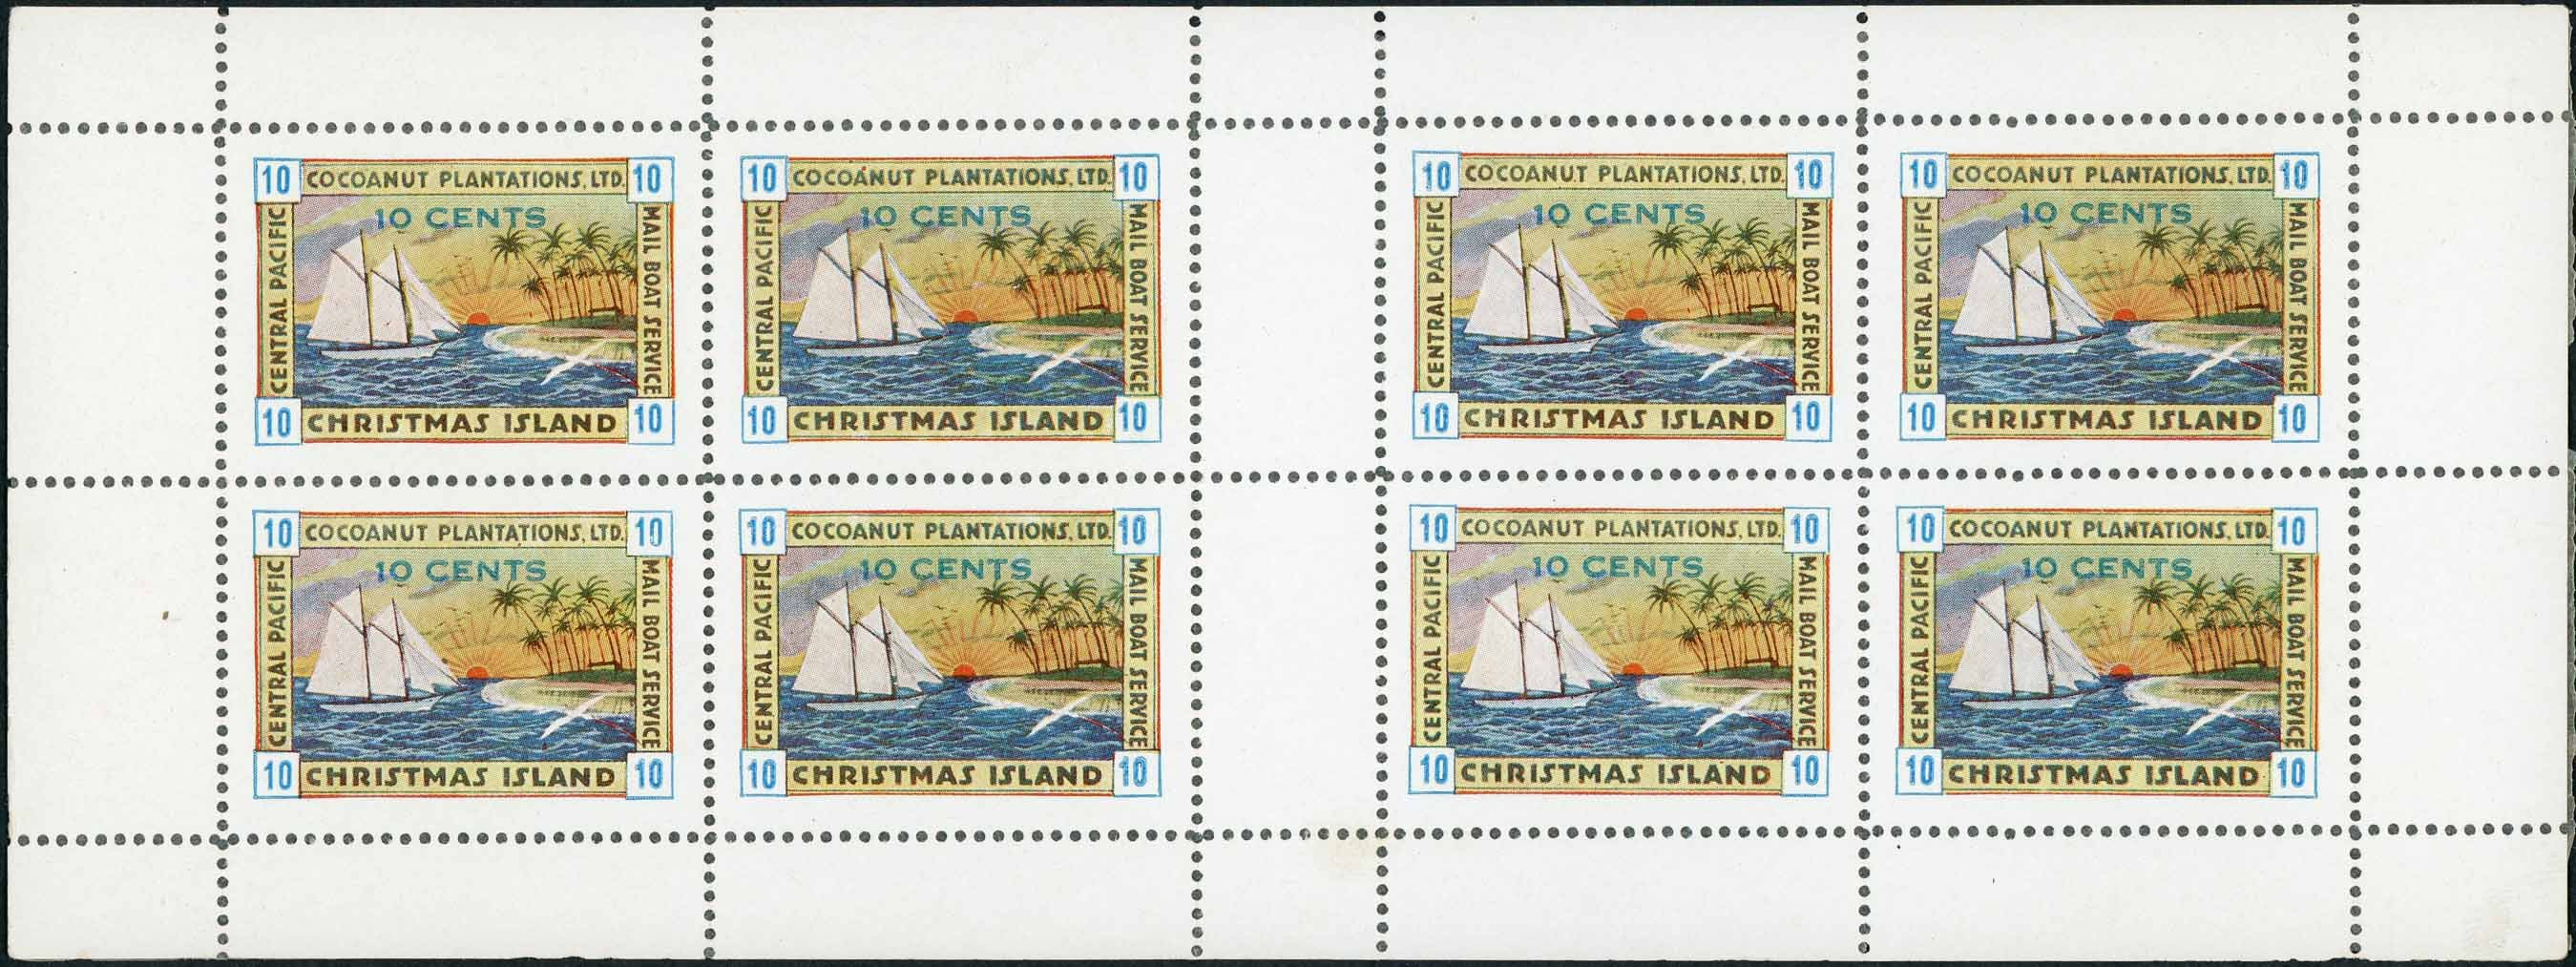 4 Issue Double Sheet